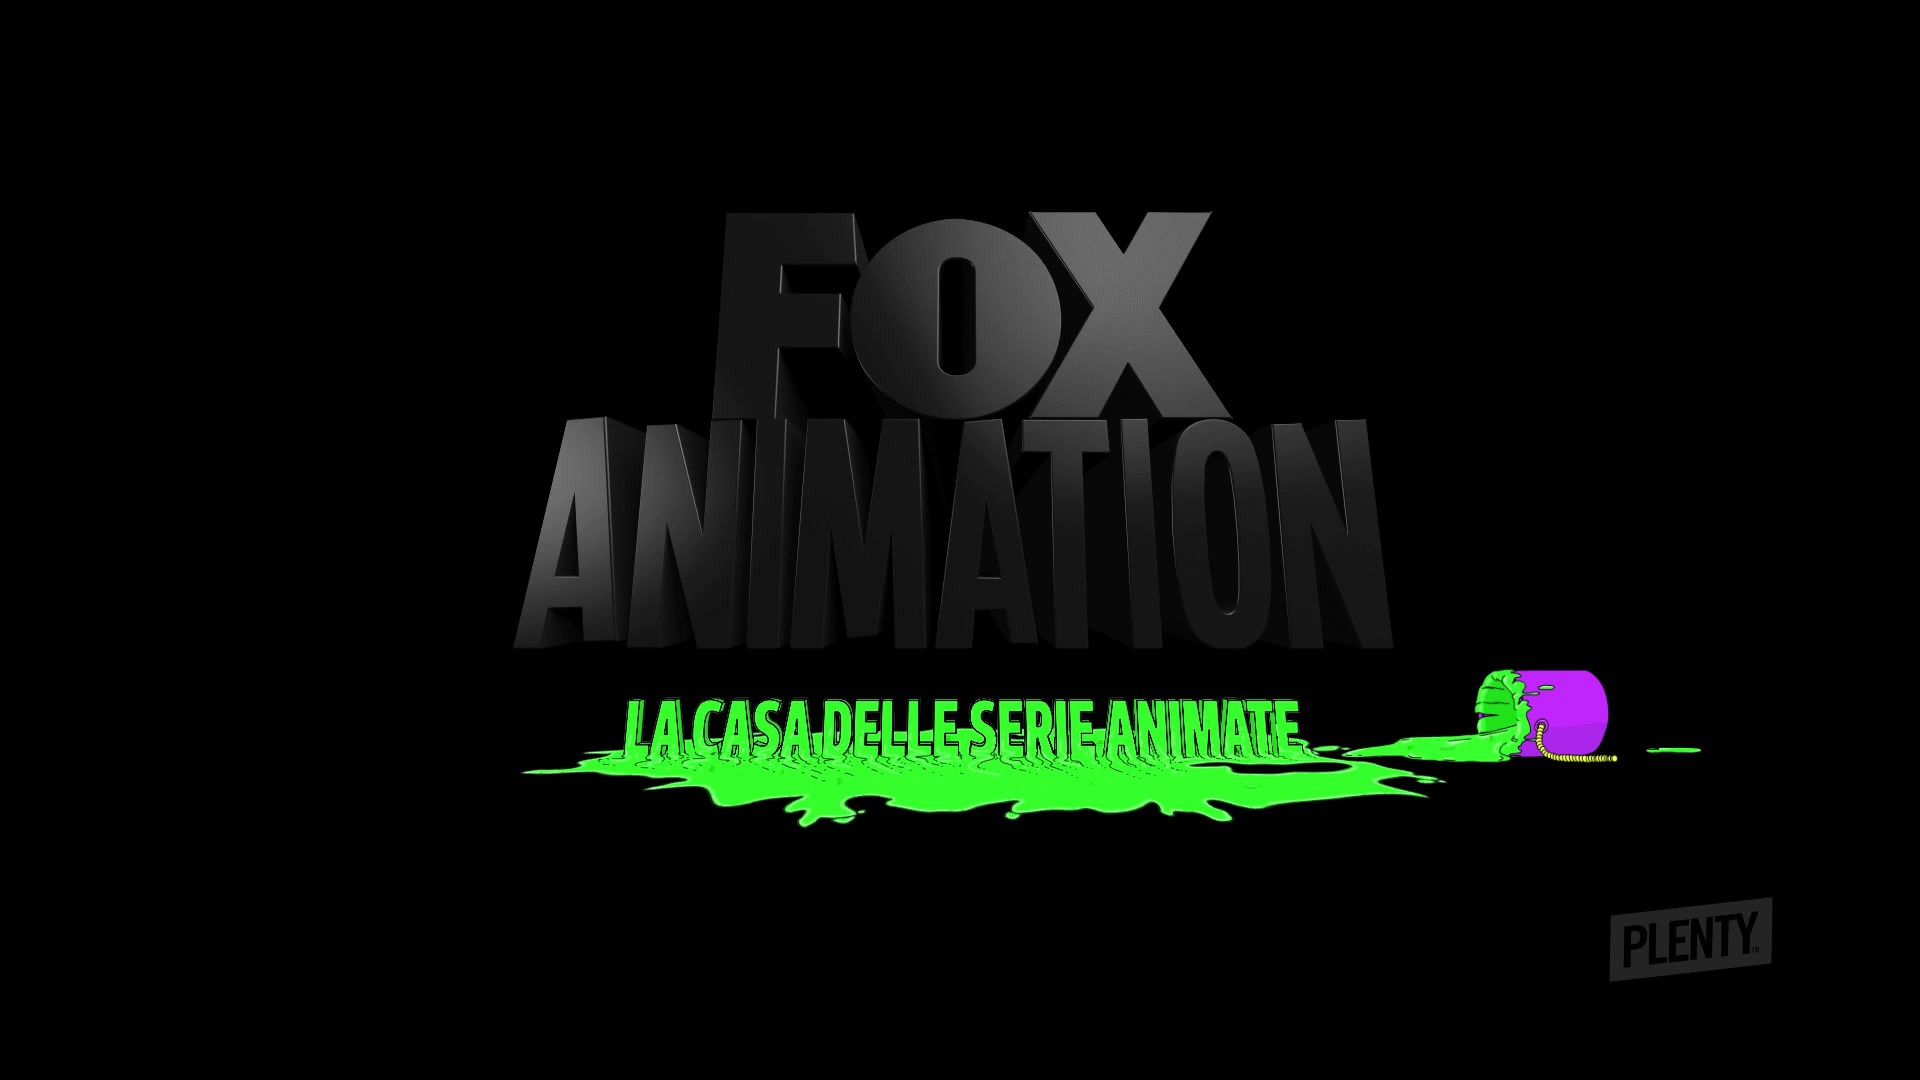 Fox Animation Tv Branding german merlo.m